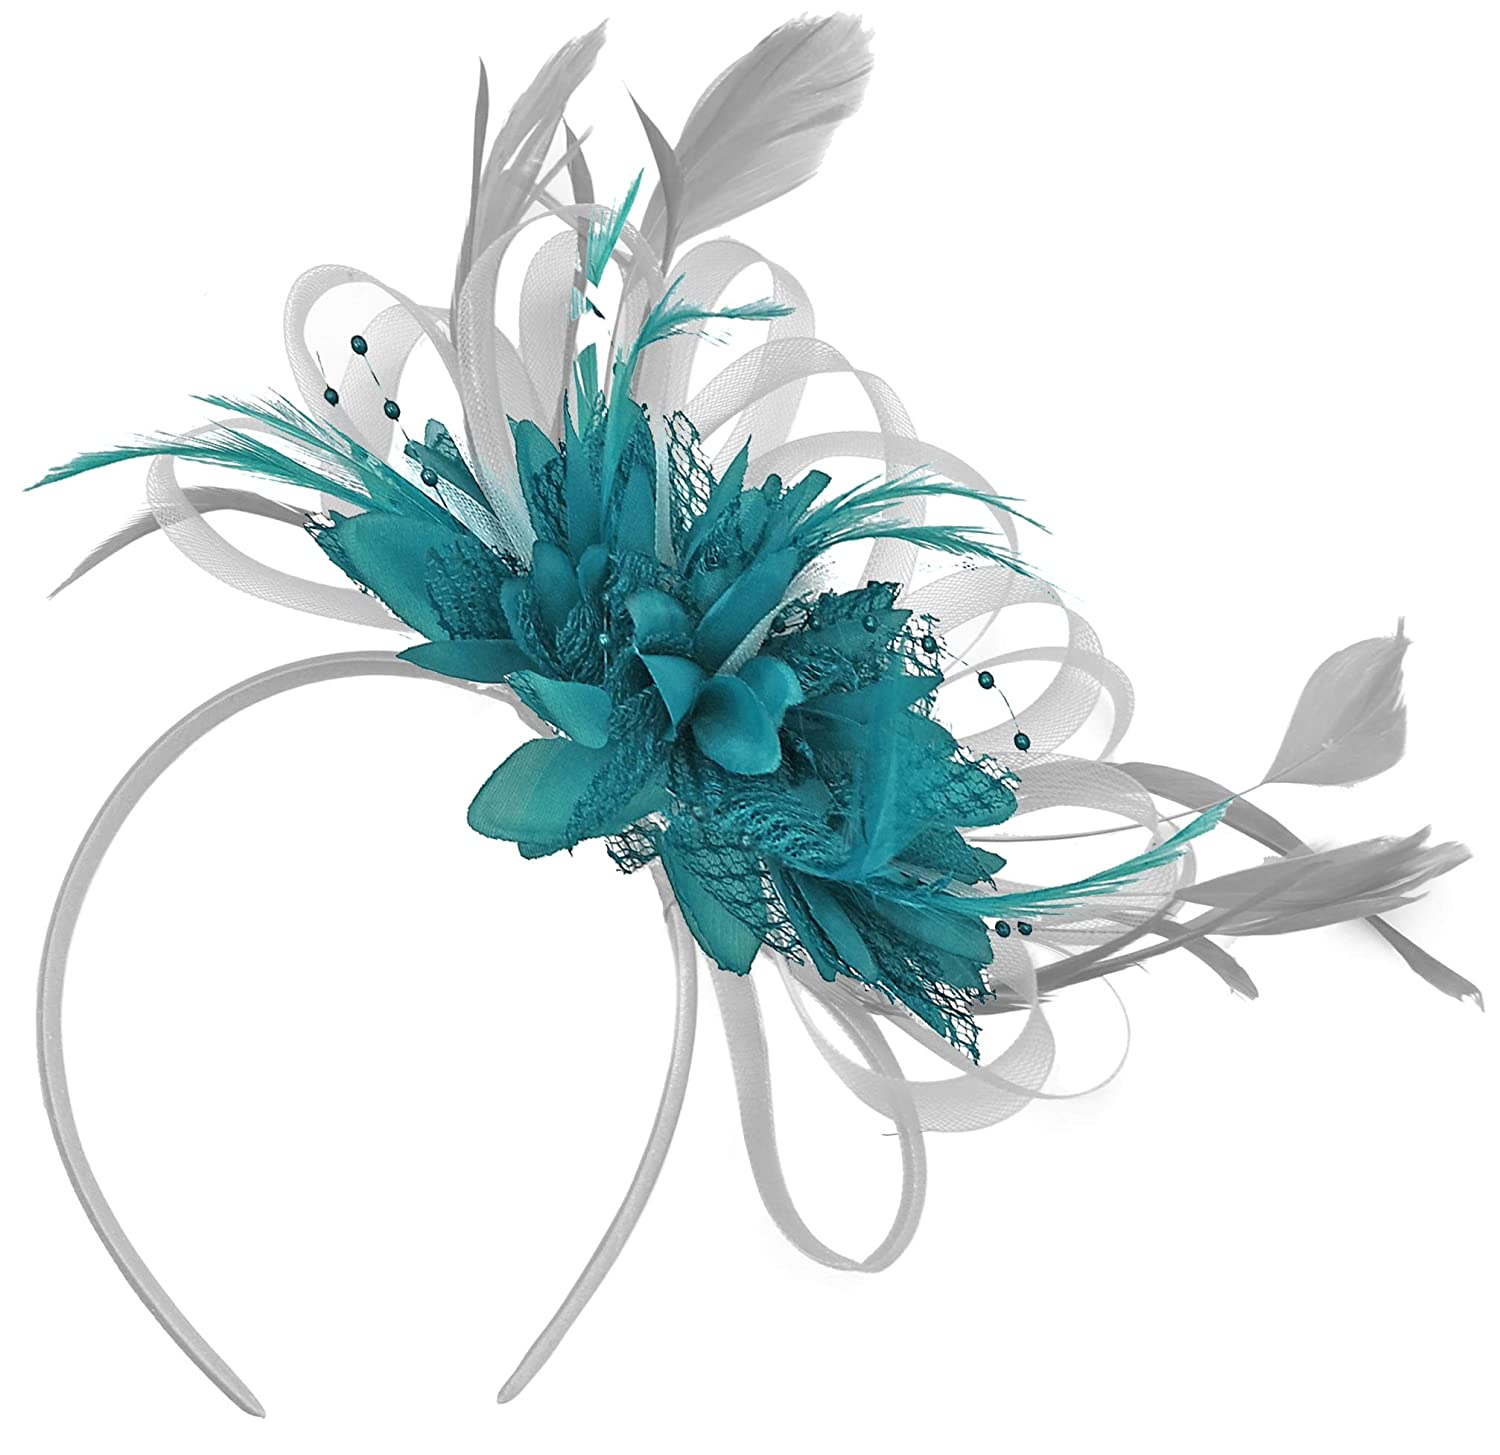 Silver Grey and Teal Turquoise Net Hoop Feather Hair Fascinator Headband  Wedding Royal Ascot Races  Amazon.co.uk  Clothing 5106ab493d3c